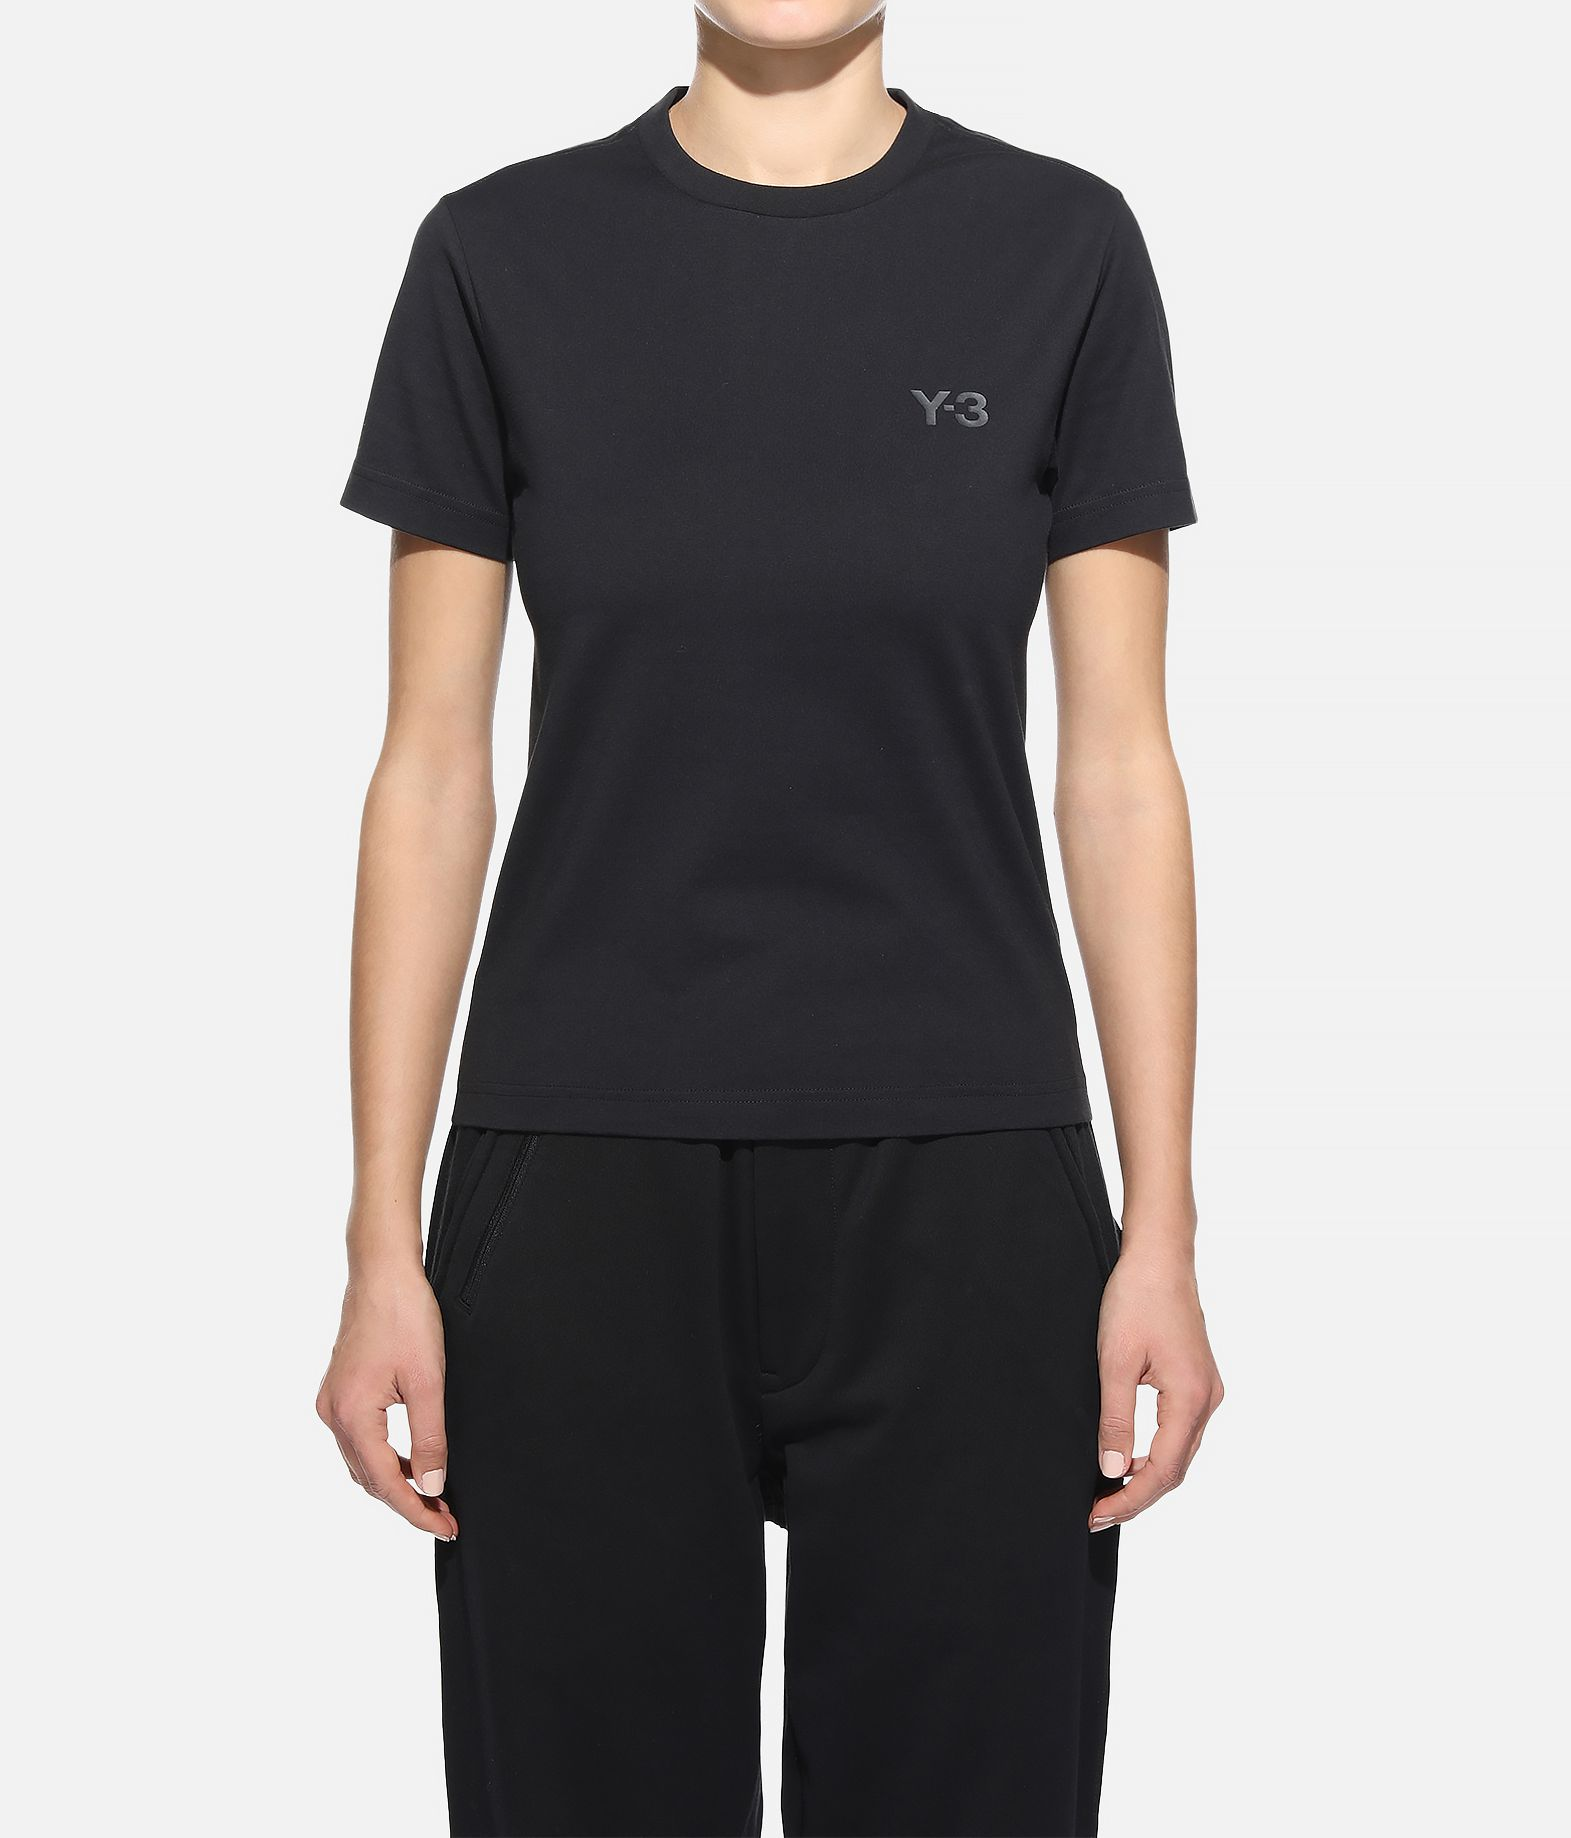 Y-3 Y-3 Short Sleeve Tee  Short sleeve t-shirt Woman d